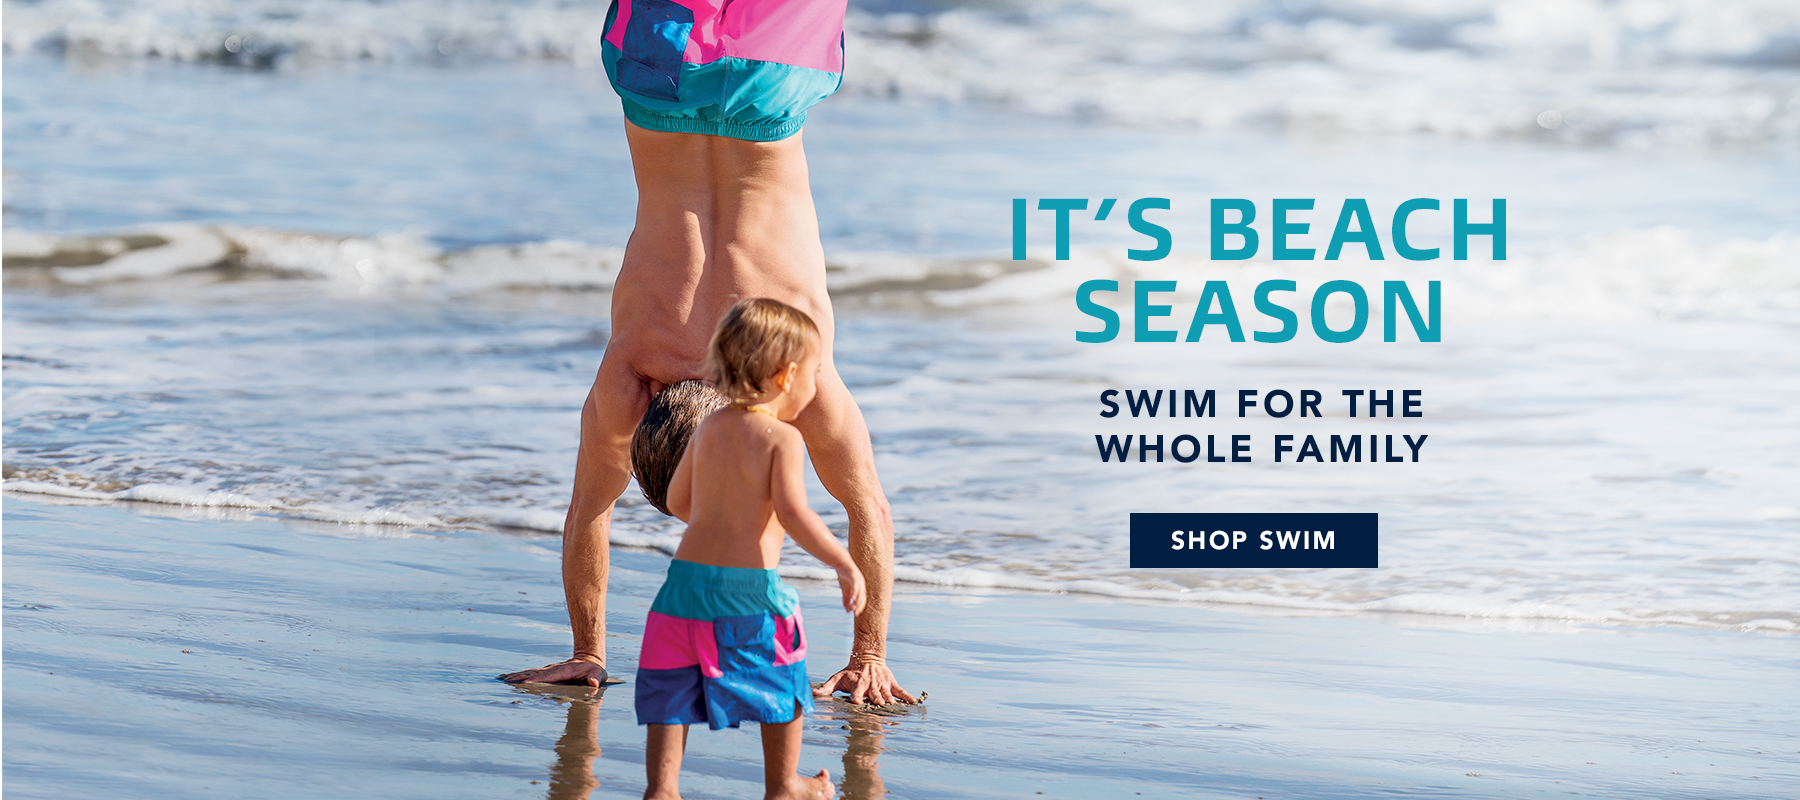 It's Beach Season. Swim For The Whole Family. Shop Swim.